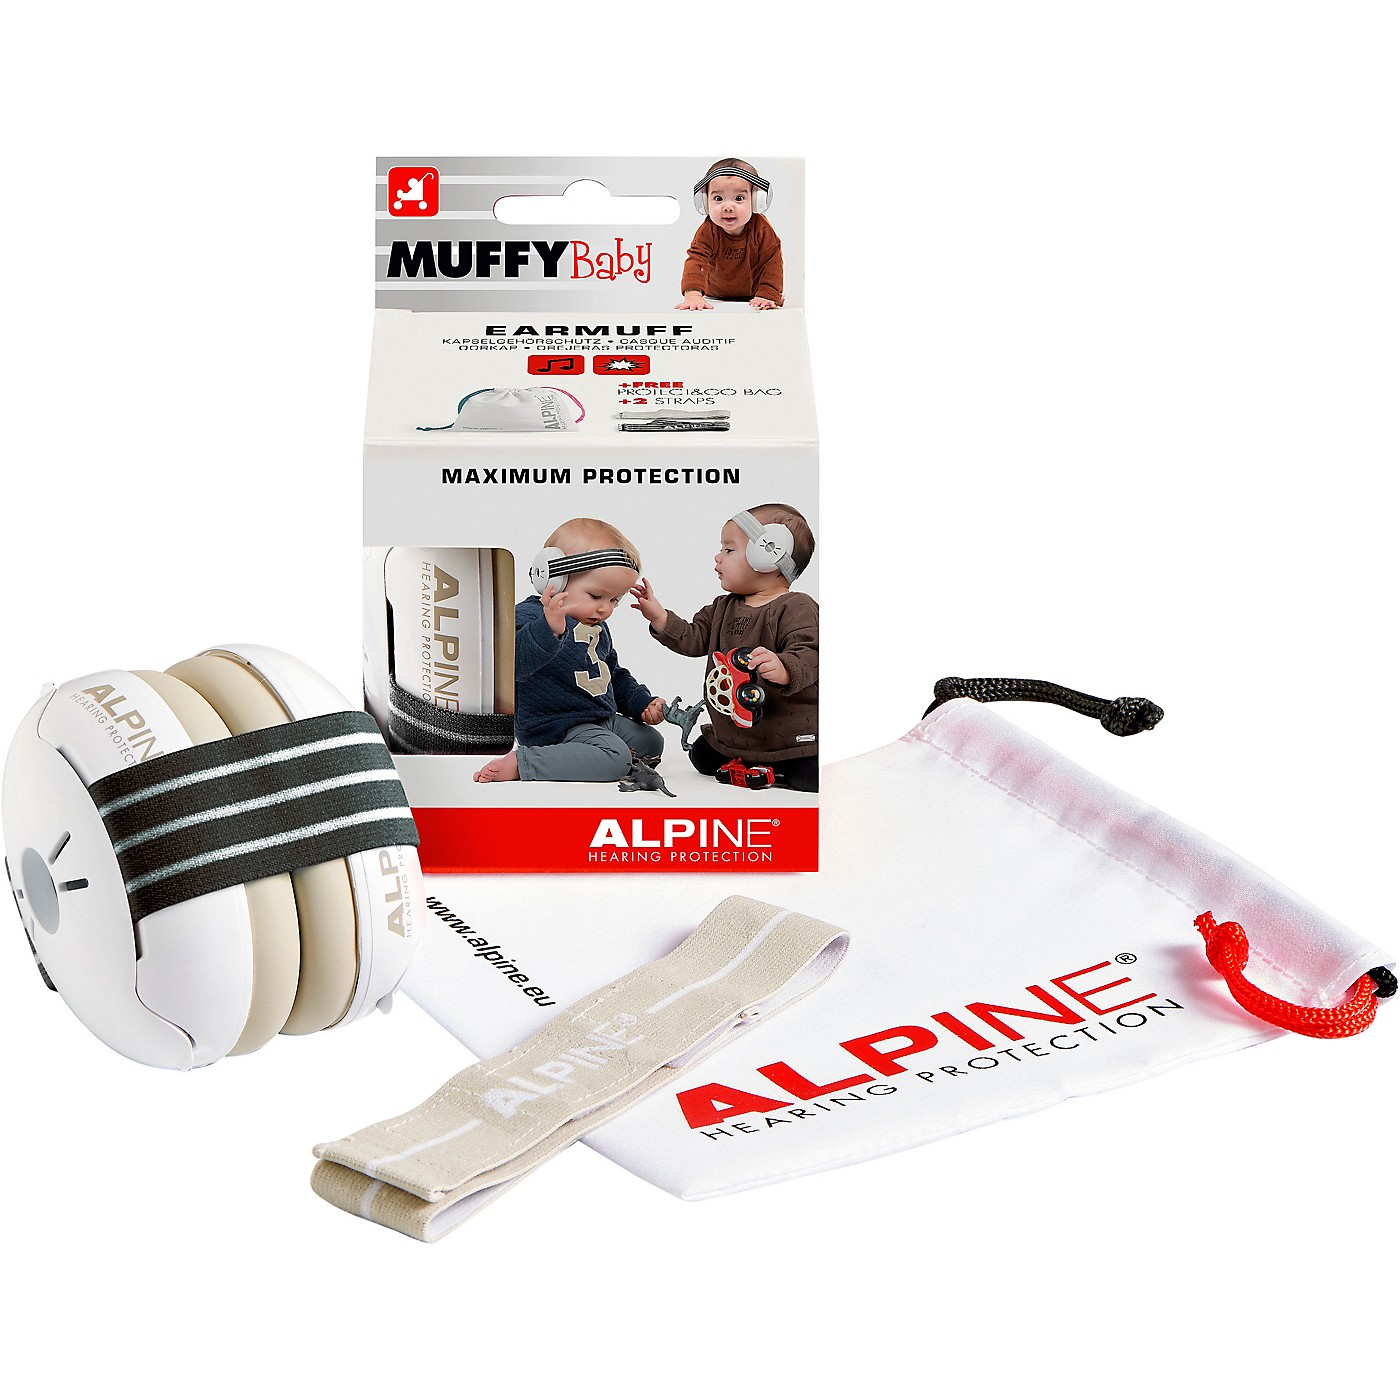 Alpine Hearing Protection Muffy Baby Black Protective Headphones thumbnail